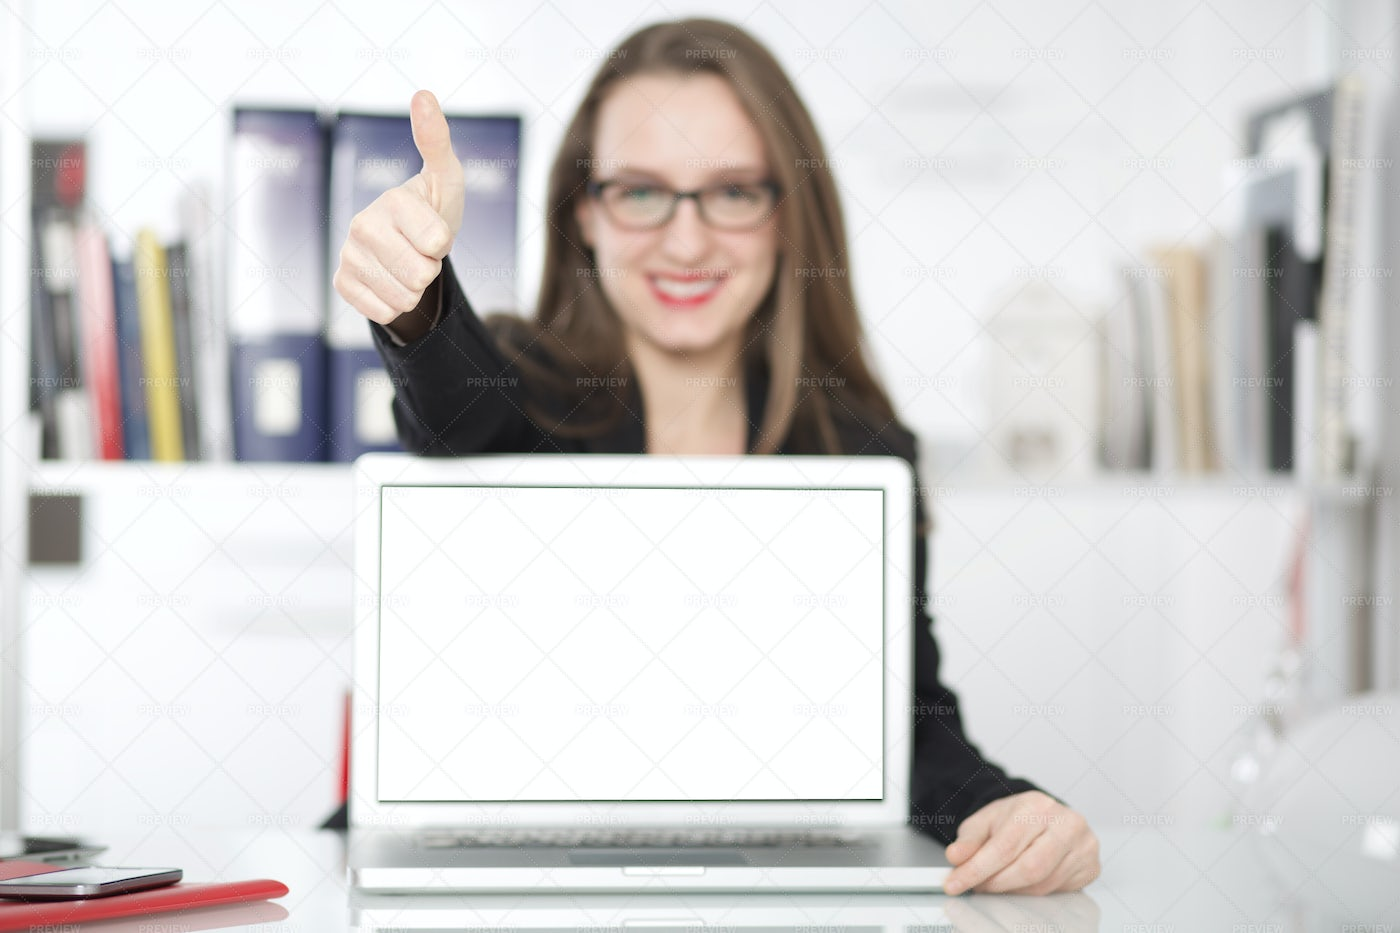 Worker Gives The Thumbs Up: Stock Photos